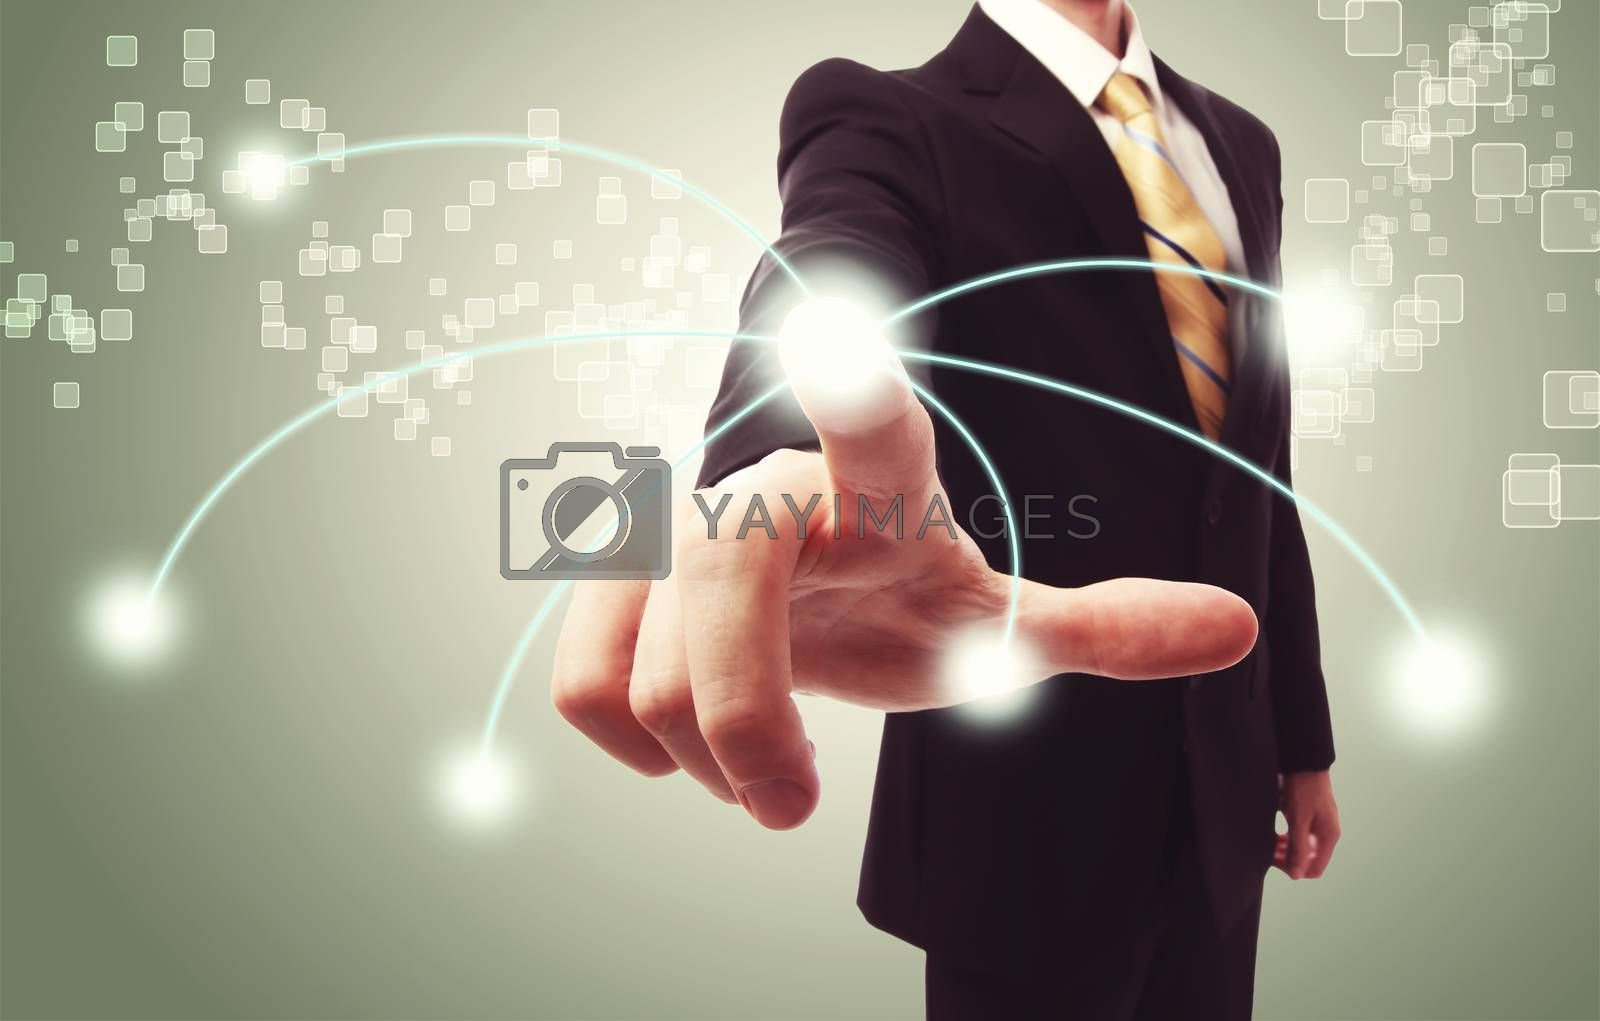 Royalty free image of Businessman pressing technology button by melpomene